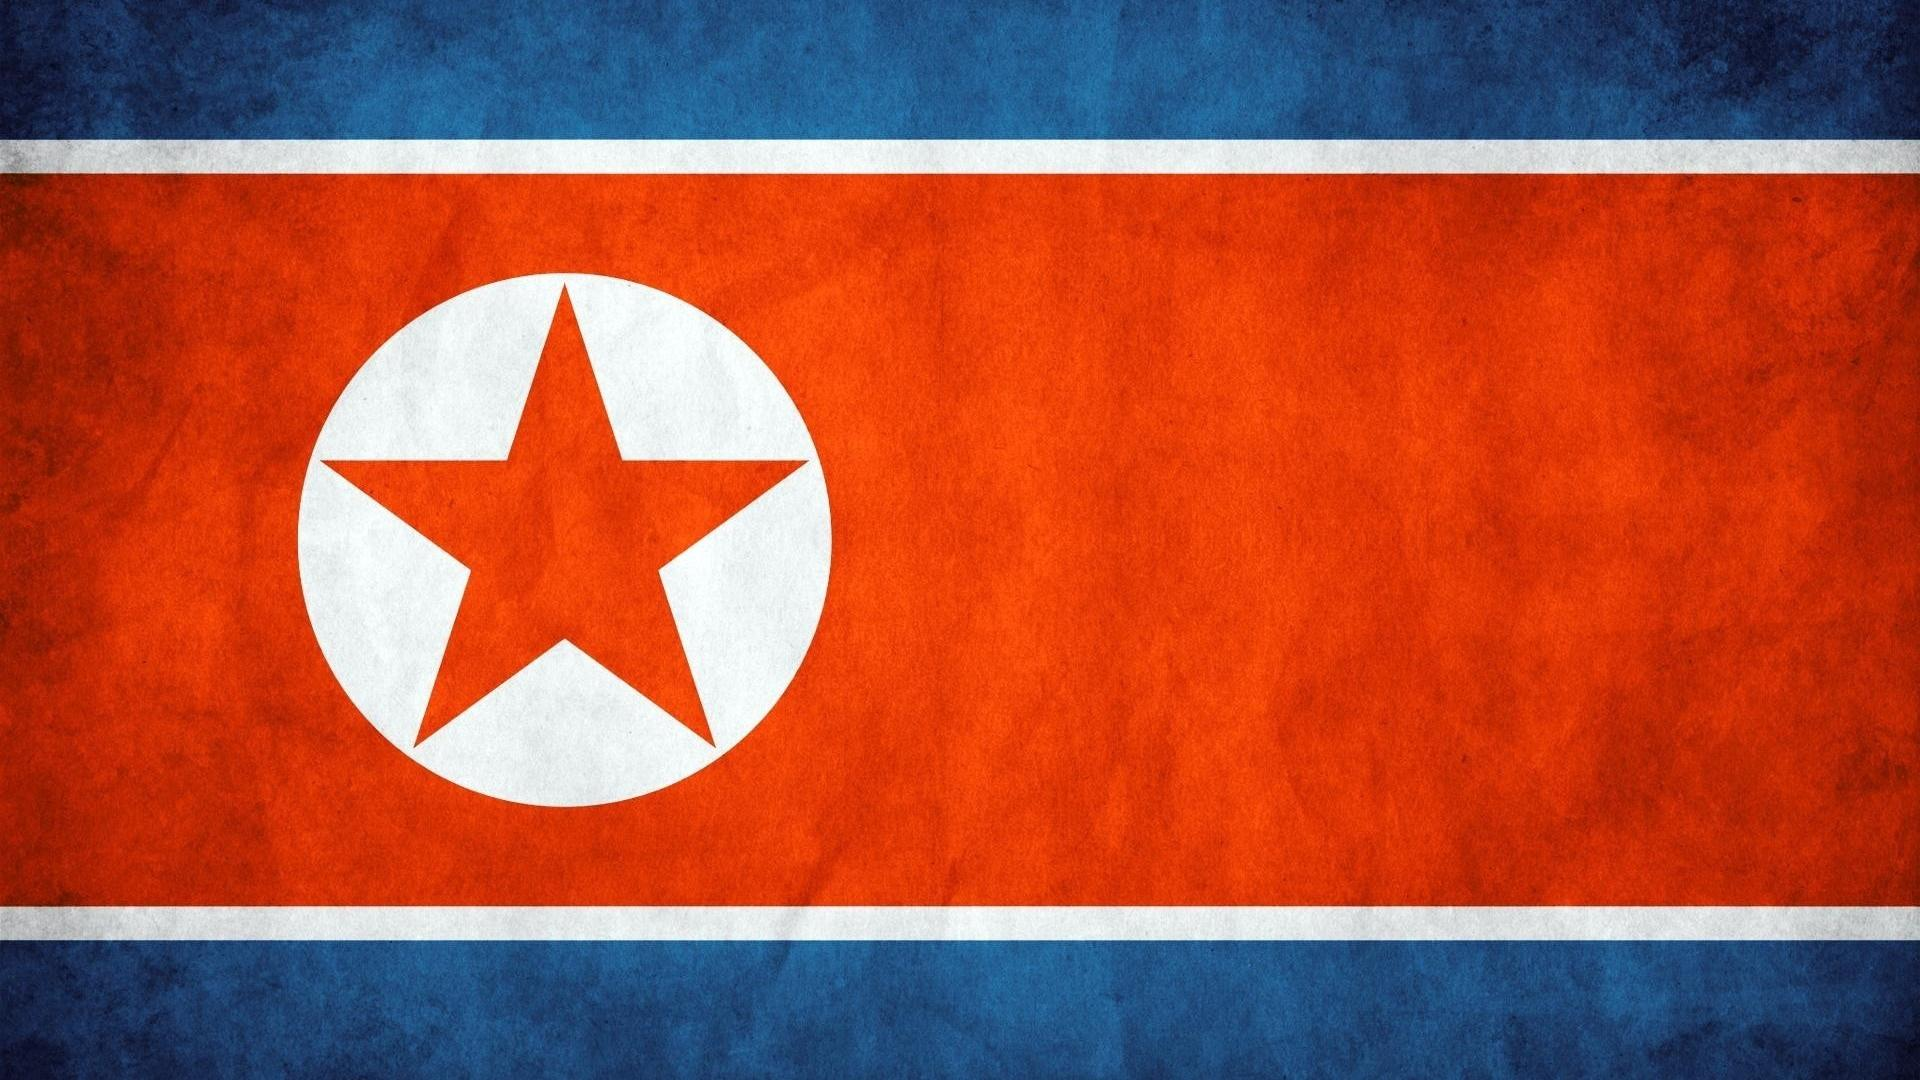 Download wallpapers 1920x1080 north korea, background, texture, flag